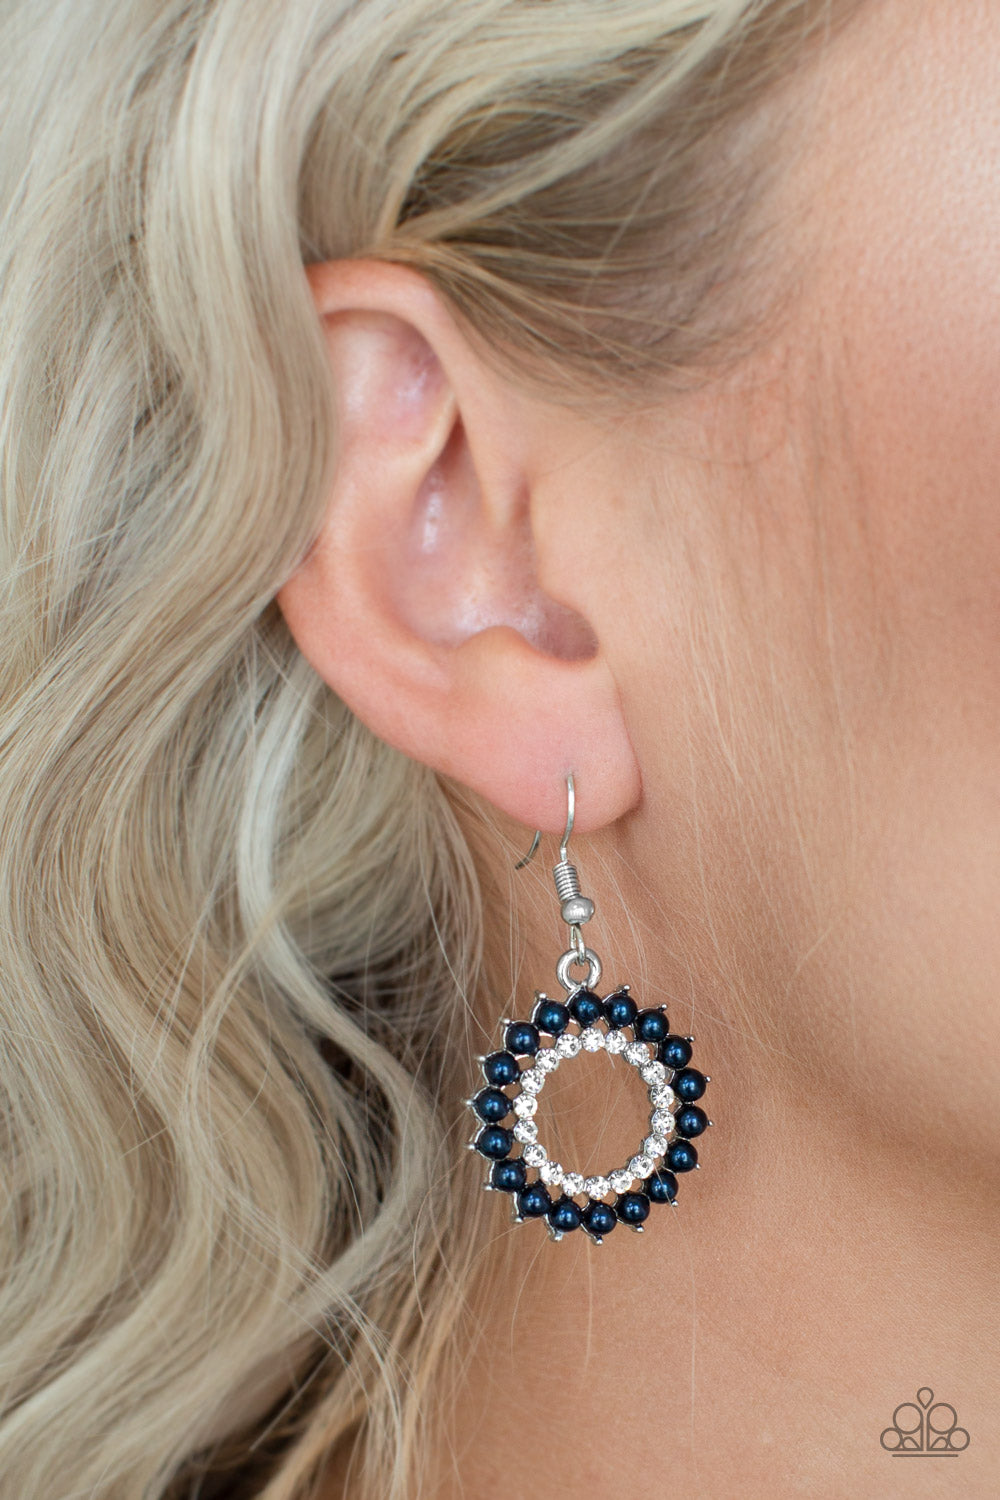 Wreathed in Radiance - blue - Paparazzi earrings